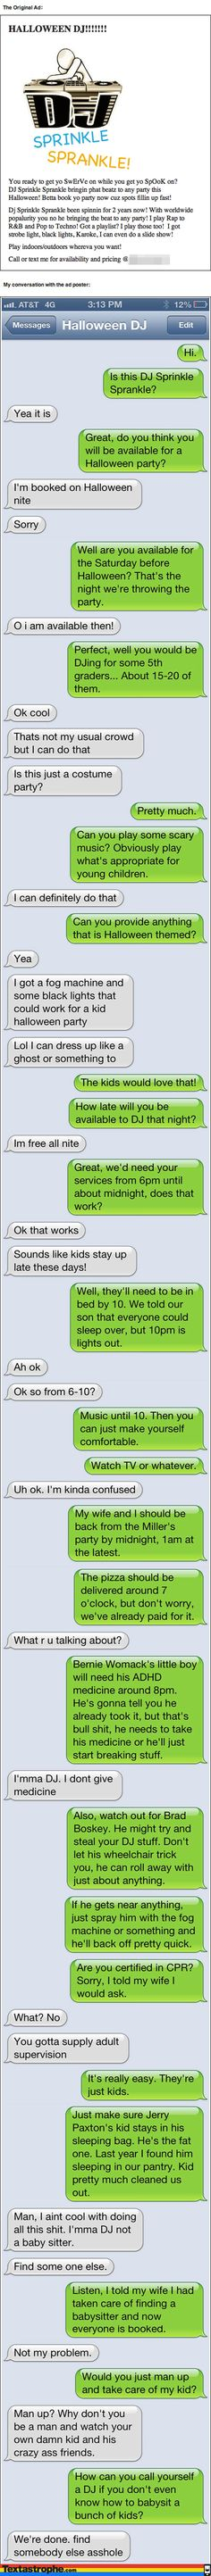 The 9 Most Hilarious Texting Pranks of All Time - Seriously, For Real?